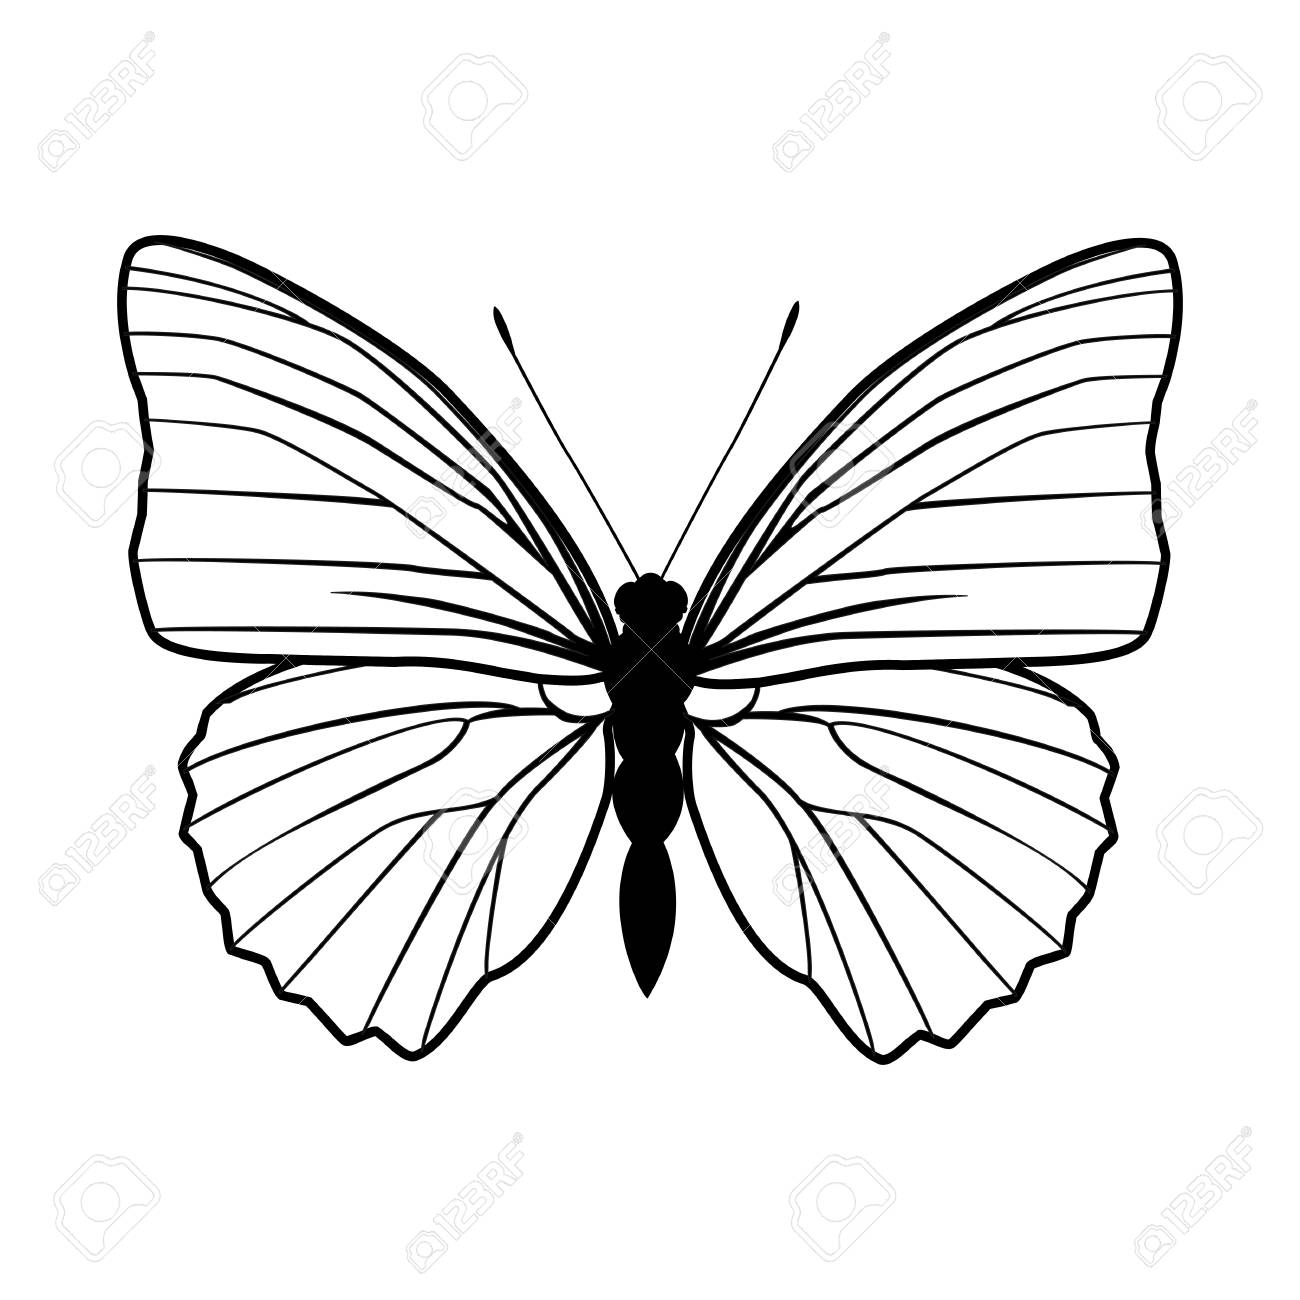 Butterfly Stencil By Hand Drawing – Stock Vector Royalty Free ...